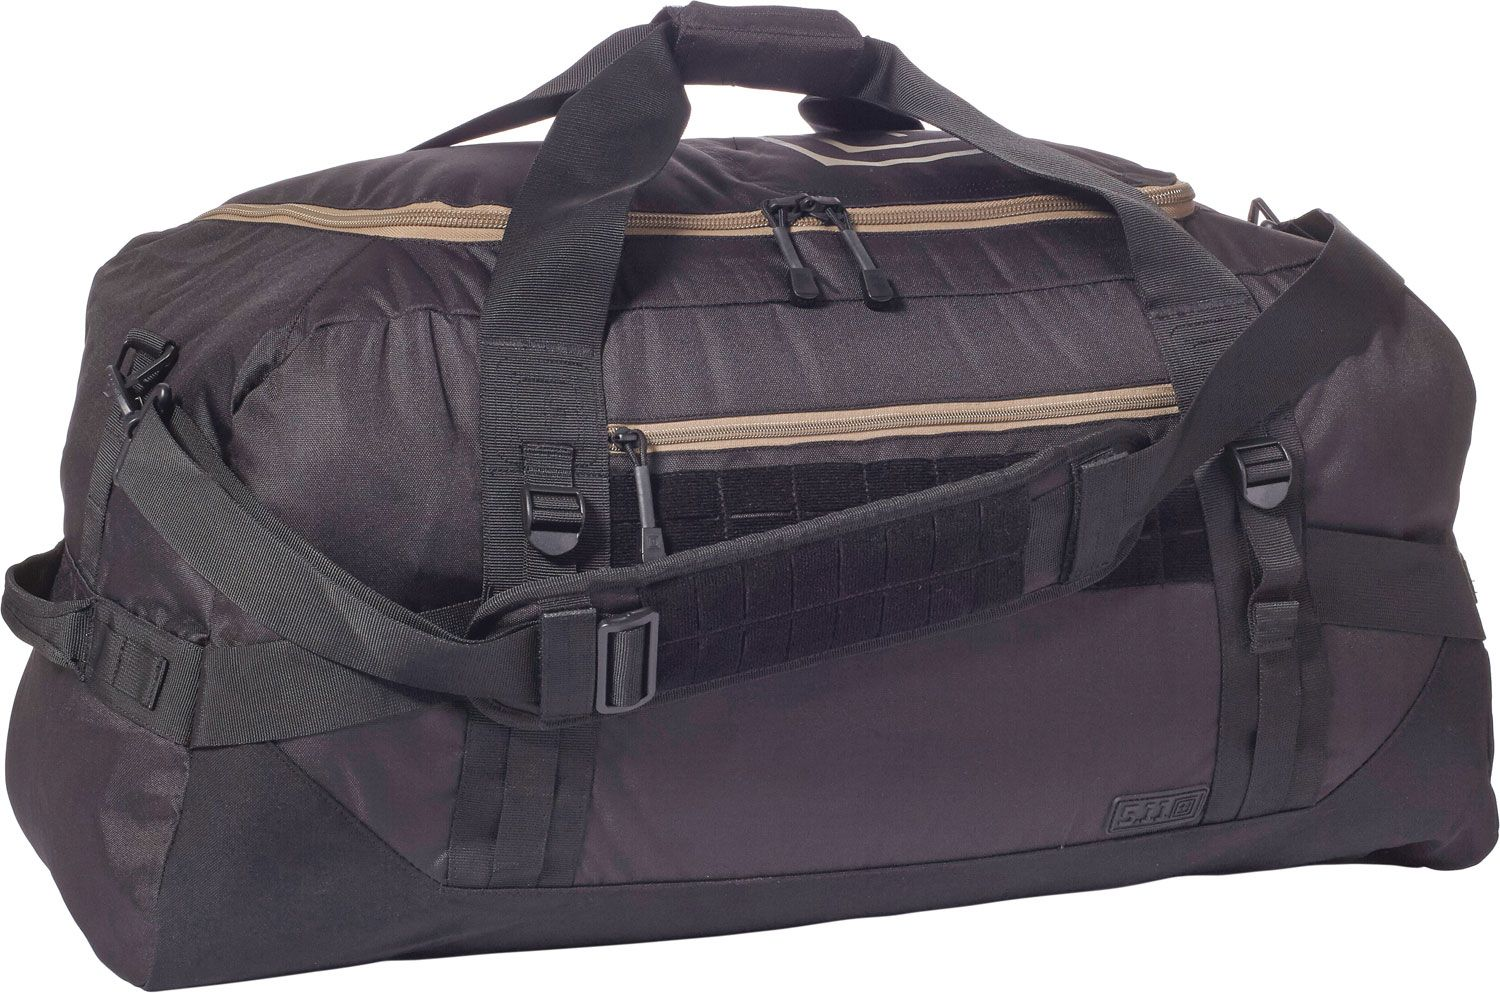 5.11 Tactical NBT Duffle X-Ray Duffel Bag, Black (56185-019)